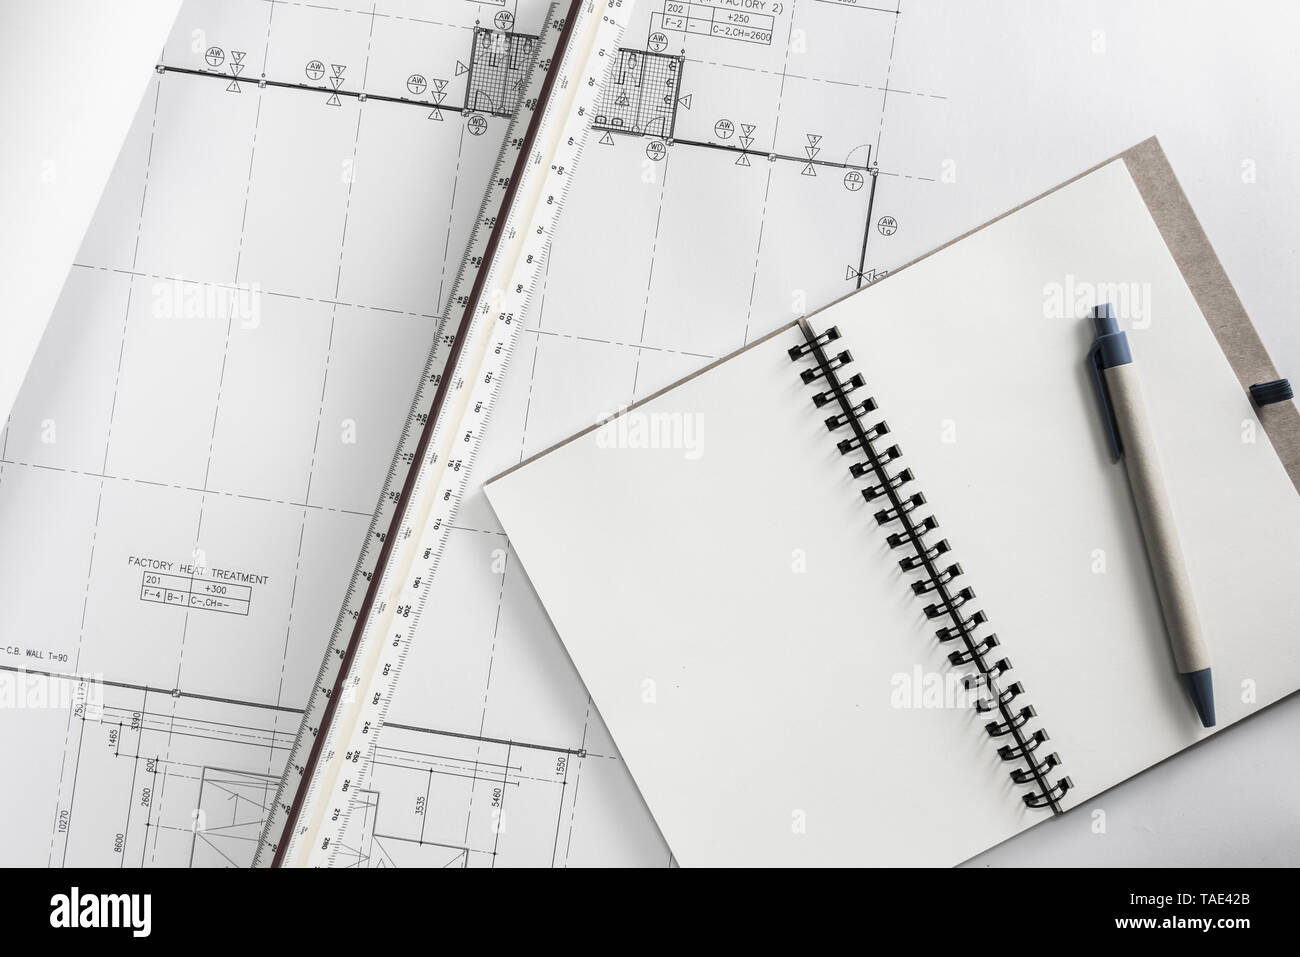 Construction design work of engineer concept - Stock Image